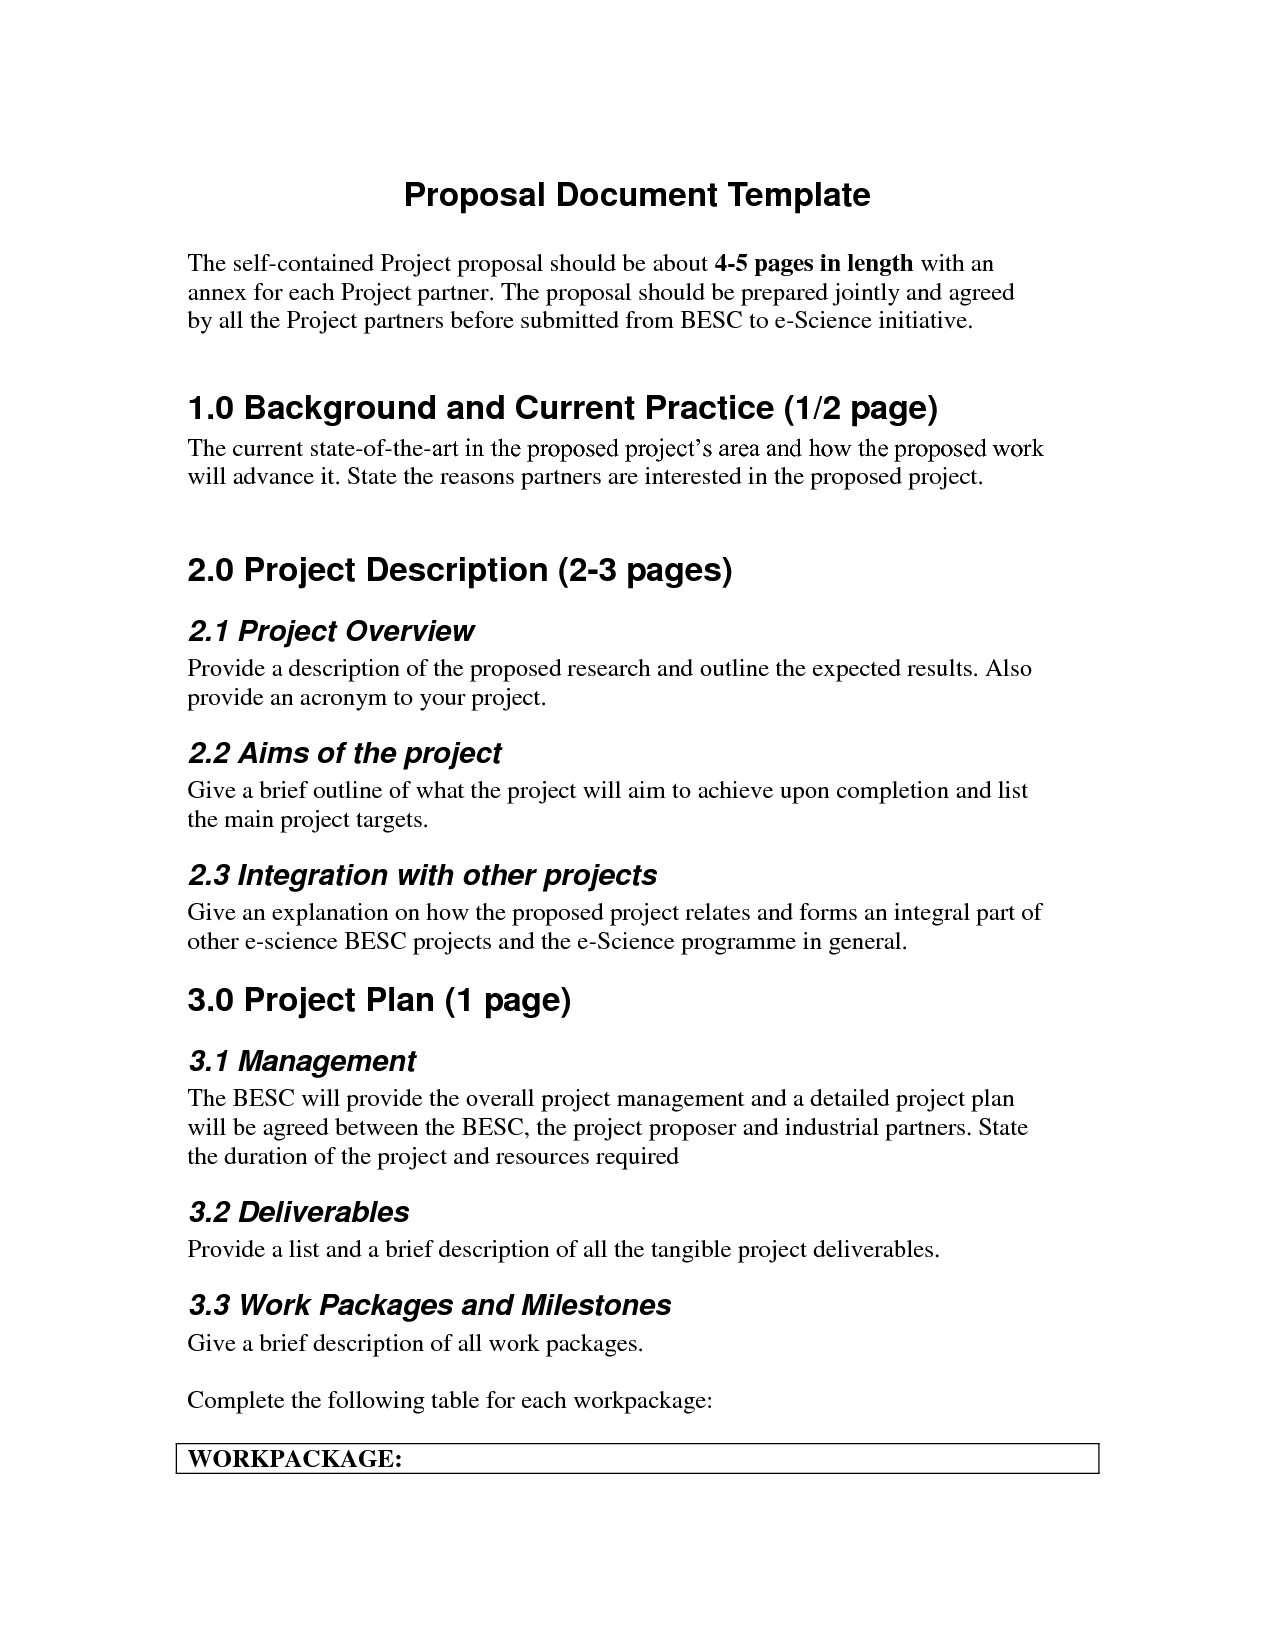 Gay Rights Argumentative Essay Essay Proposal Template Proposal Essay Topics Before Students Write A  College Research Paper Write An Essay About Your Family also Writing A Visual Analysis Essay Essay Proposal Template Proposal Essay Topics Before Students  Essay On Work